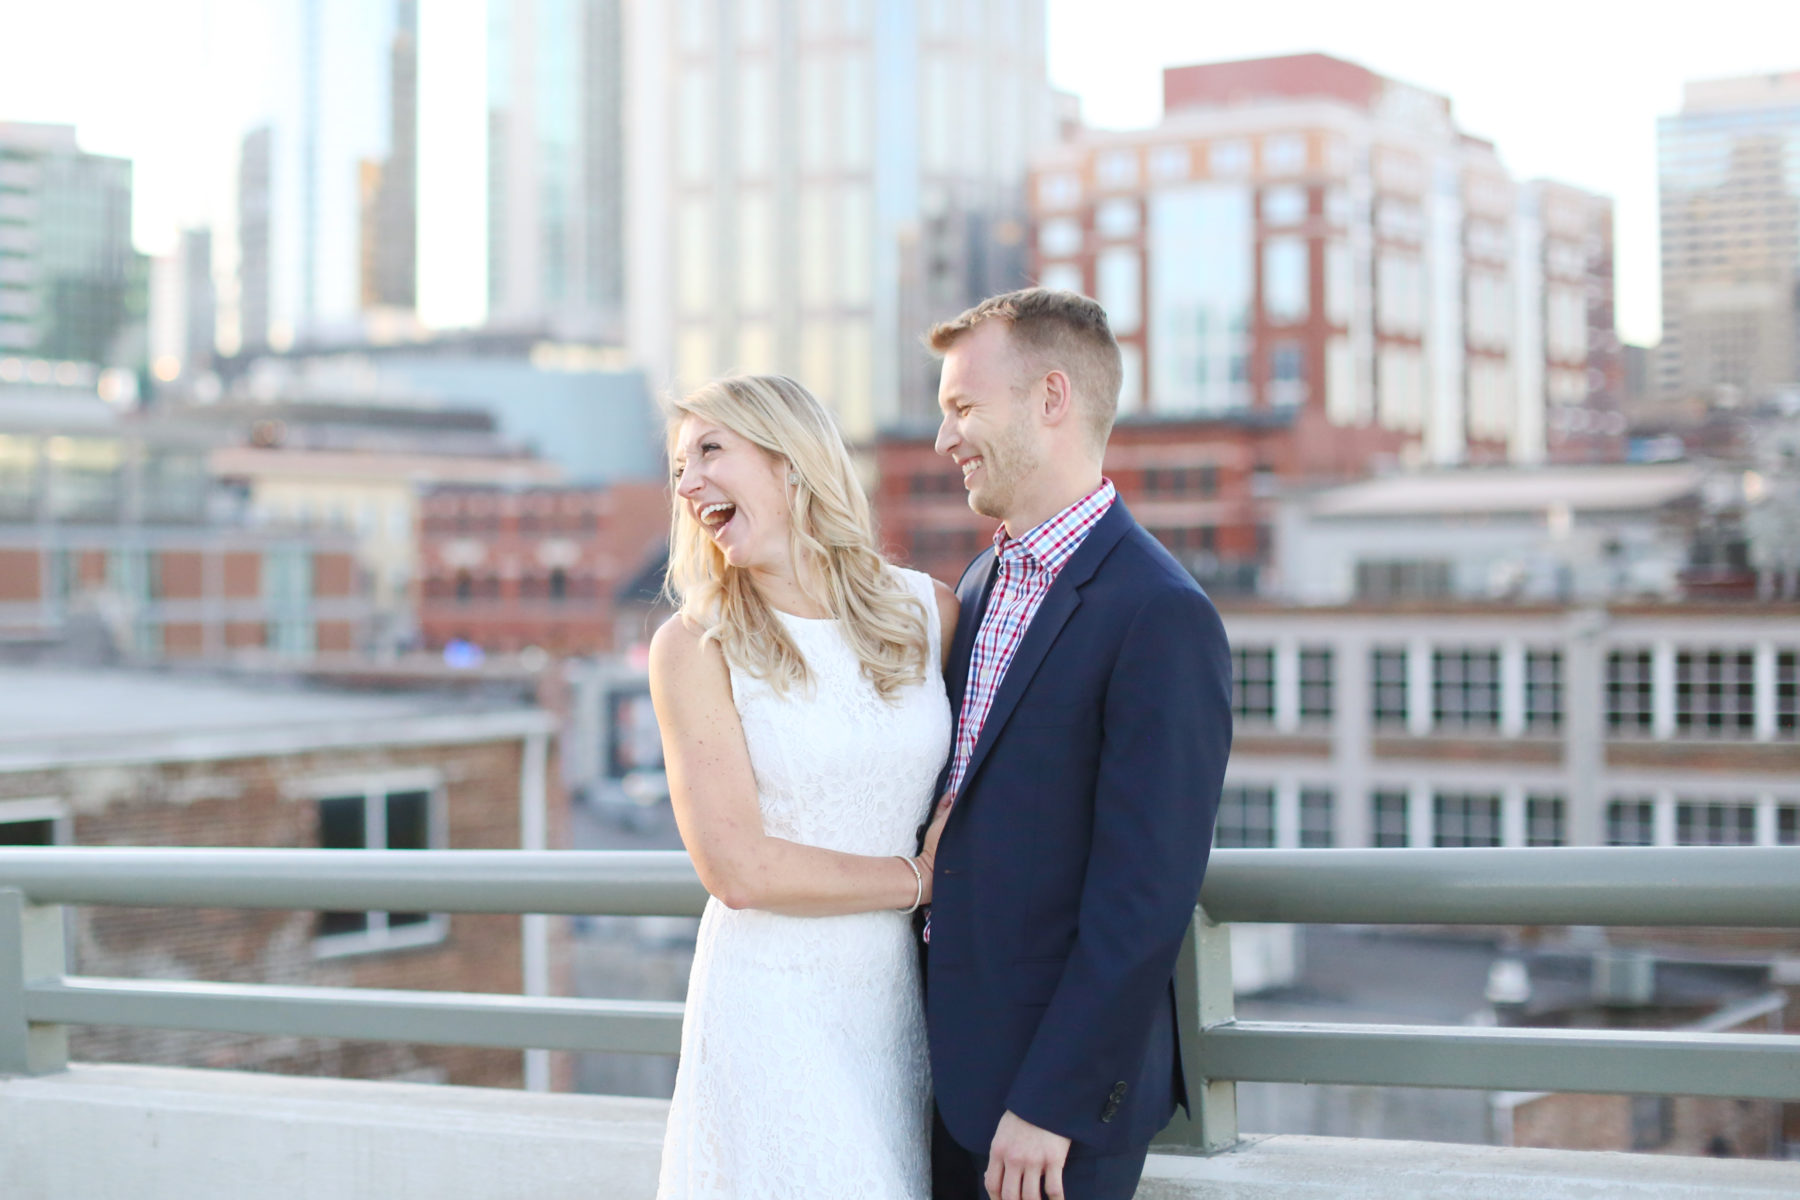 Nashville Wedding Photographer Eliza Kennard featured on Nashville Bride Guide